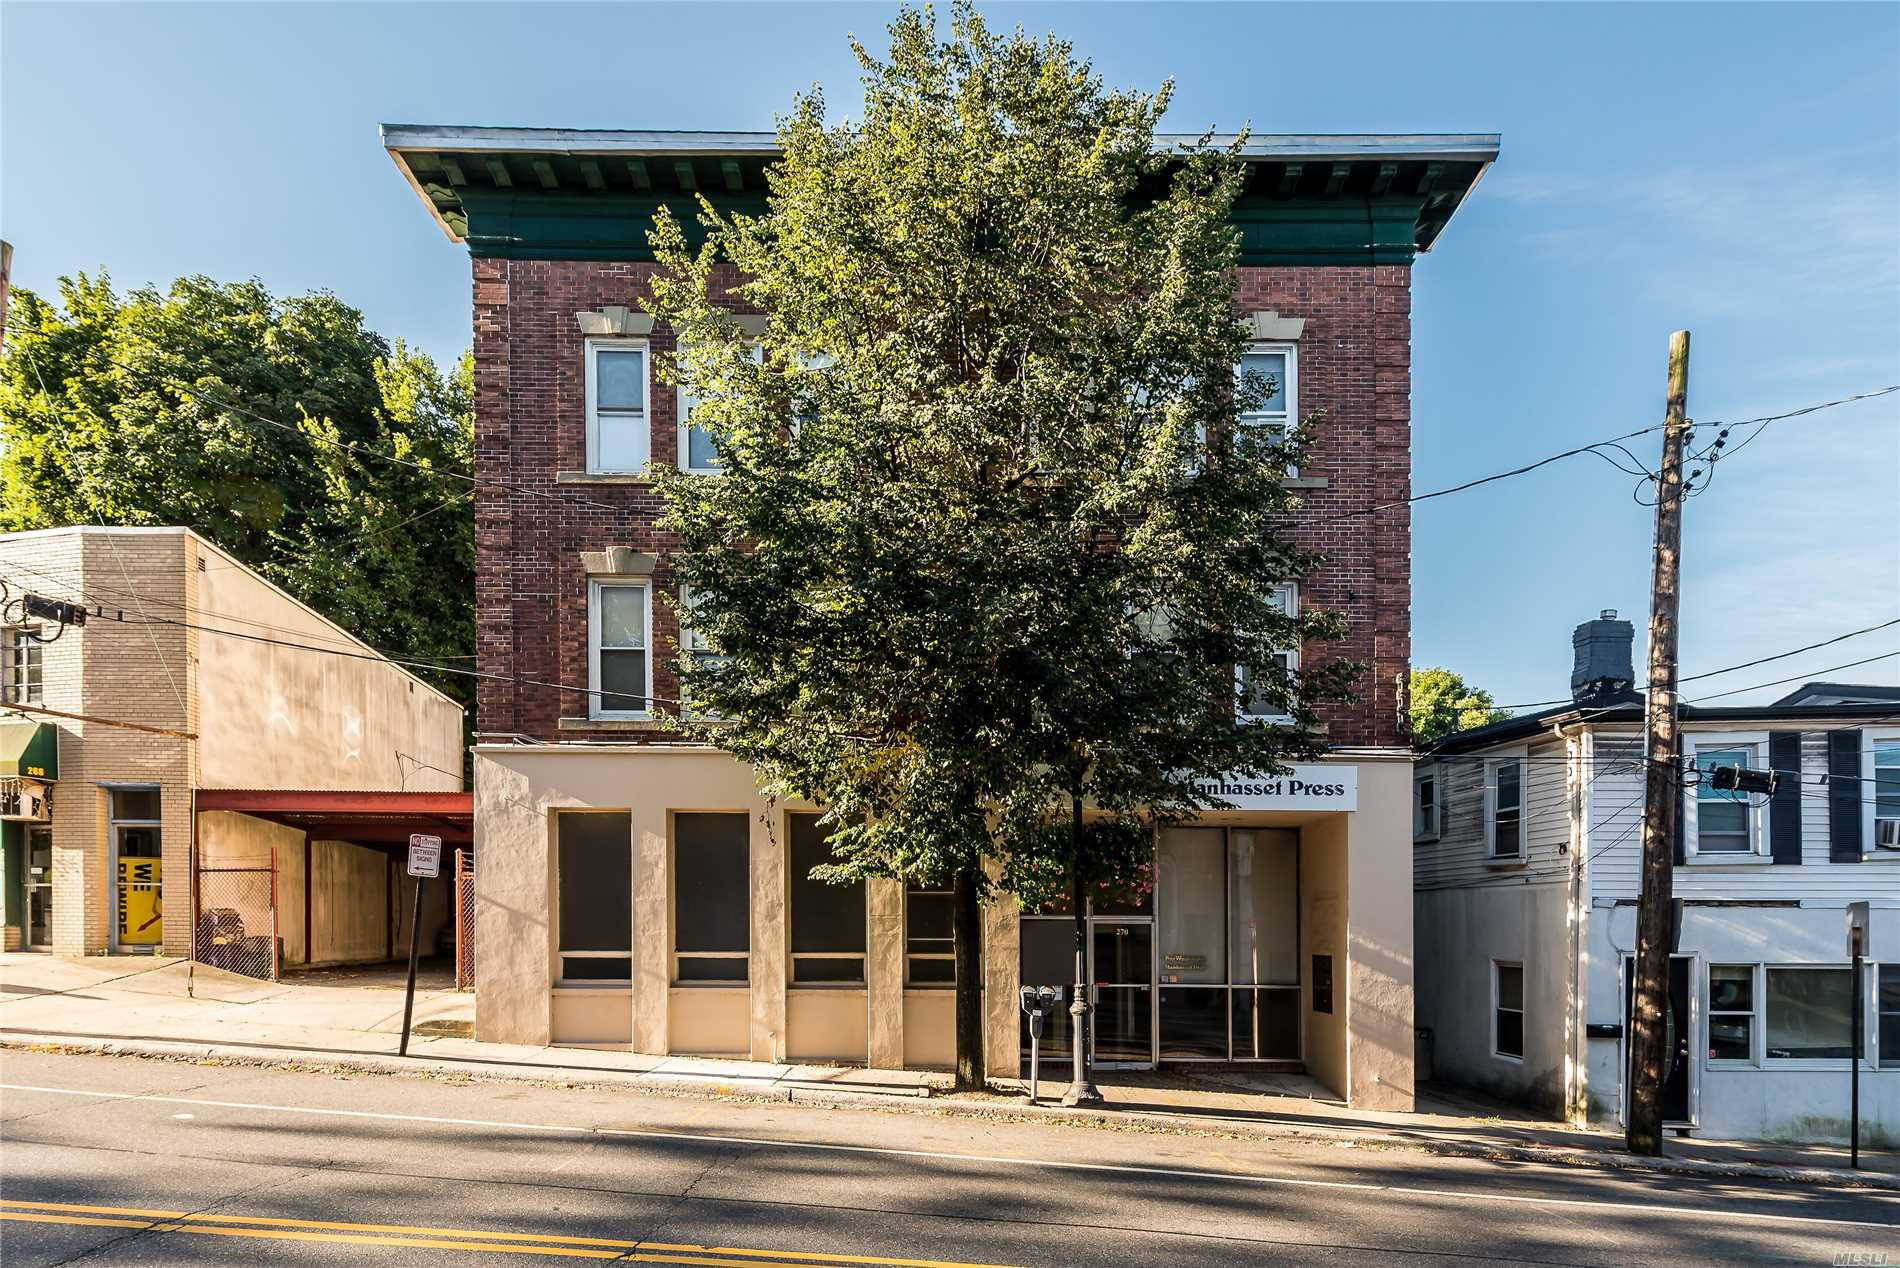 Sunny & Bright Large Second Floor Apartment. Eik, Lots Of Closets, Hardwood Floors. Heat Included! Located On Lower Main Street. Close To All!